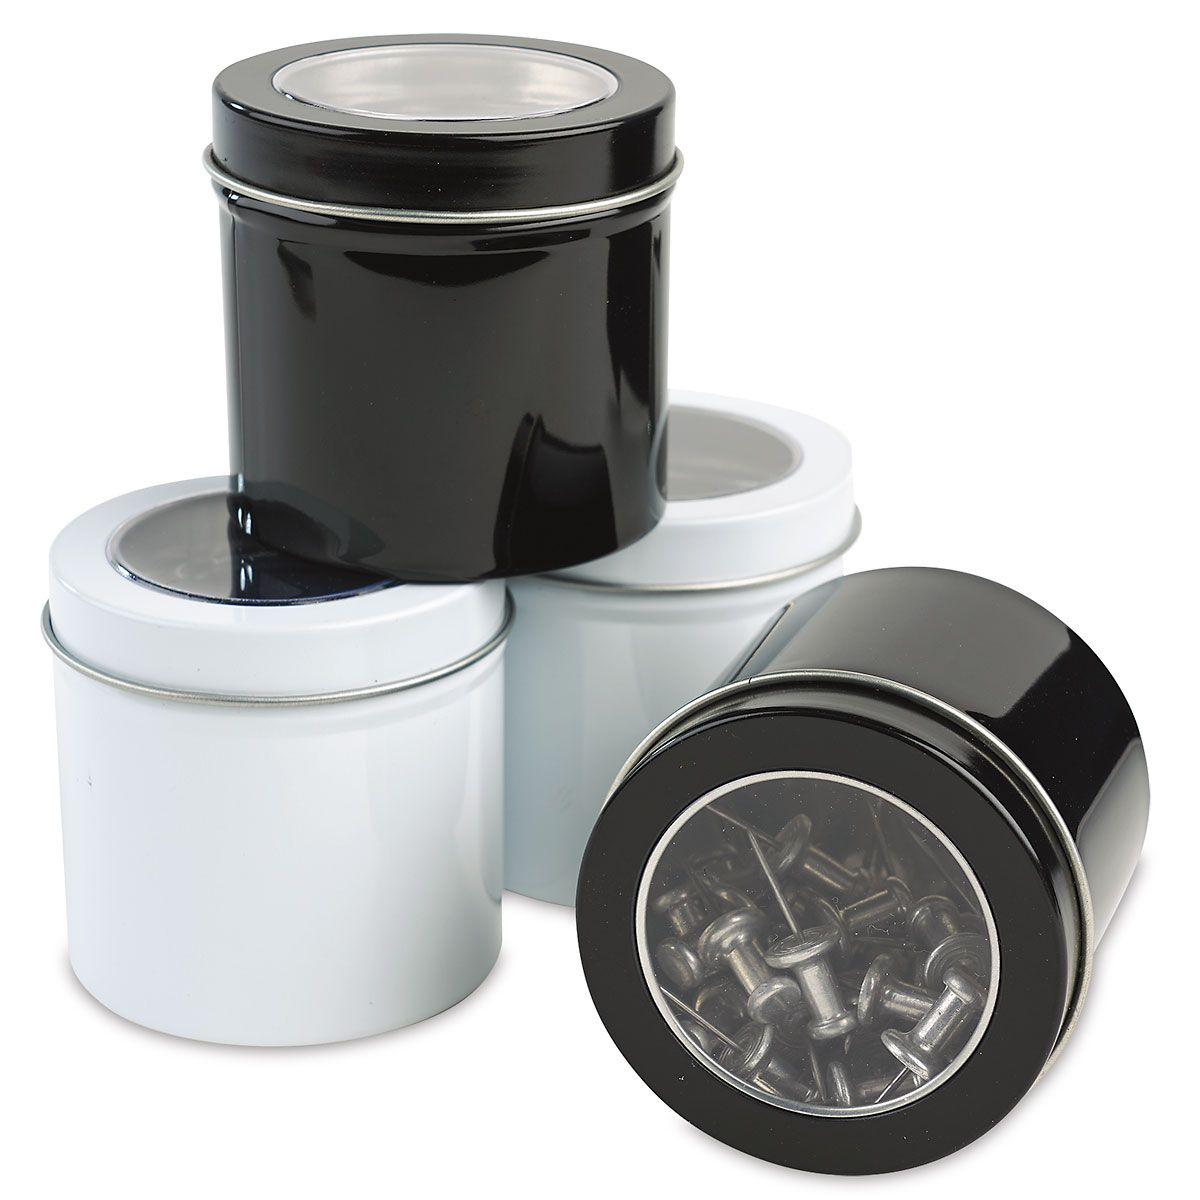 Magnetic Mini Containers Stash paperclips, rubber bandssmall desk top clutter. Tin plate; 2 black, 2 white; not food safe. Contents not included. Set of 4